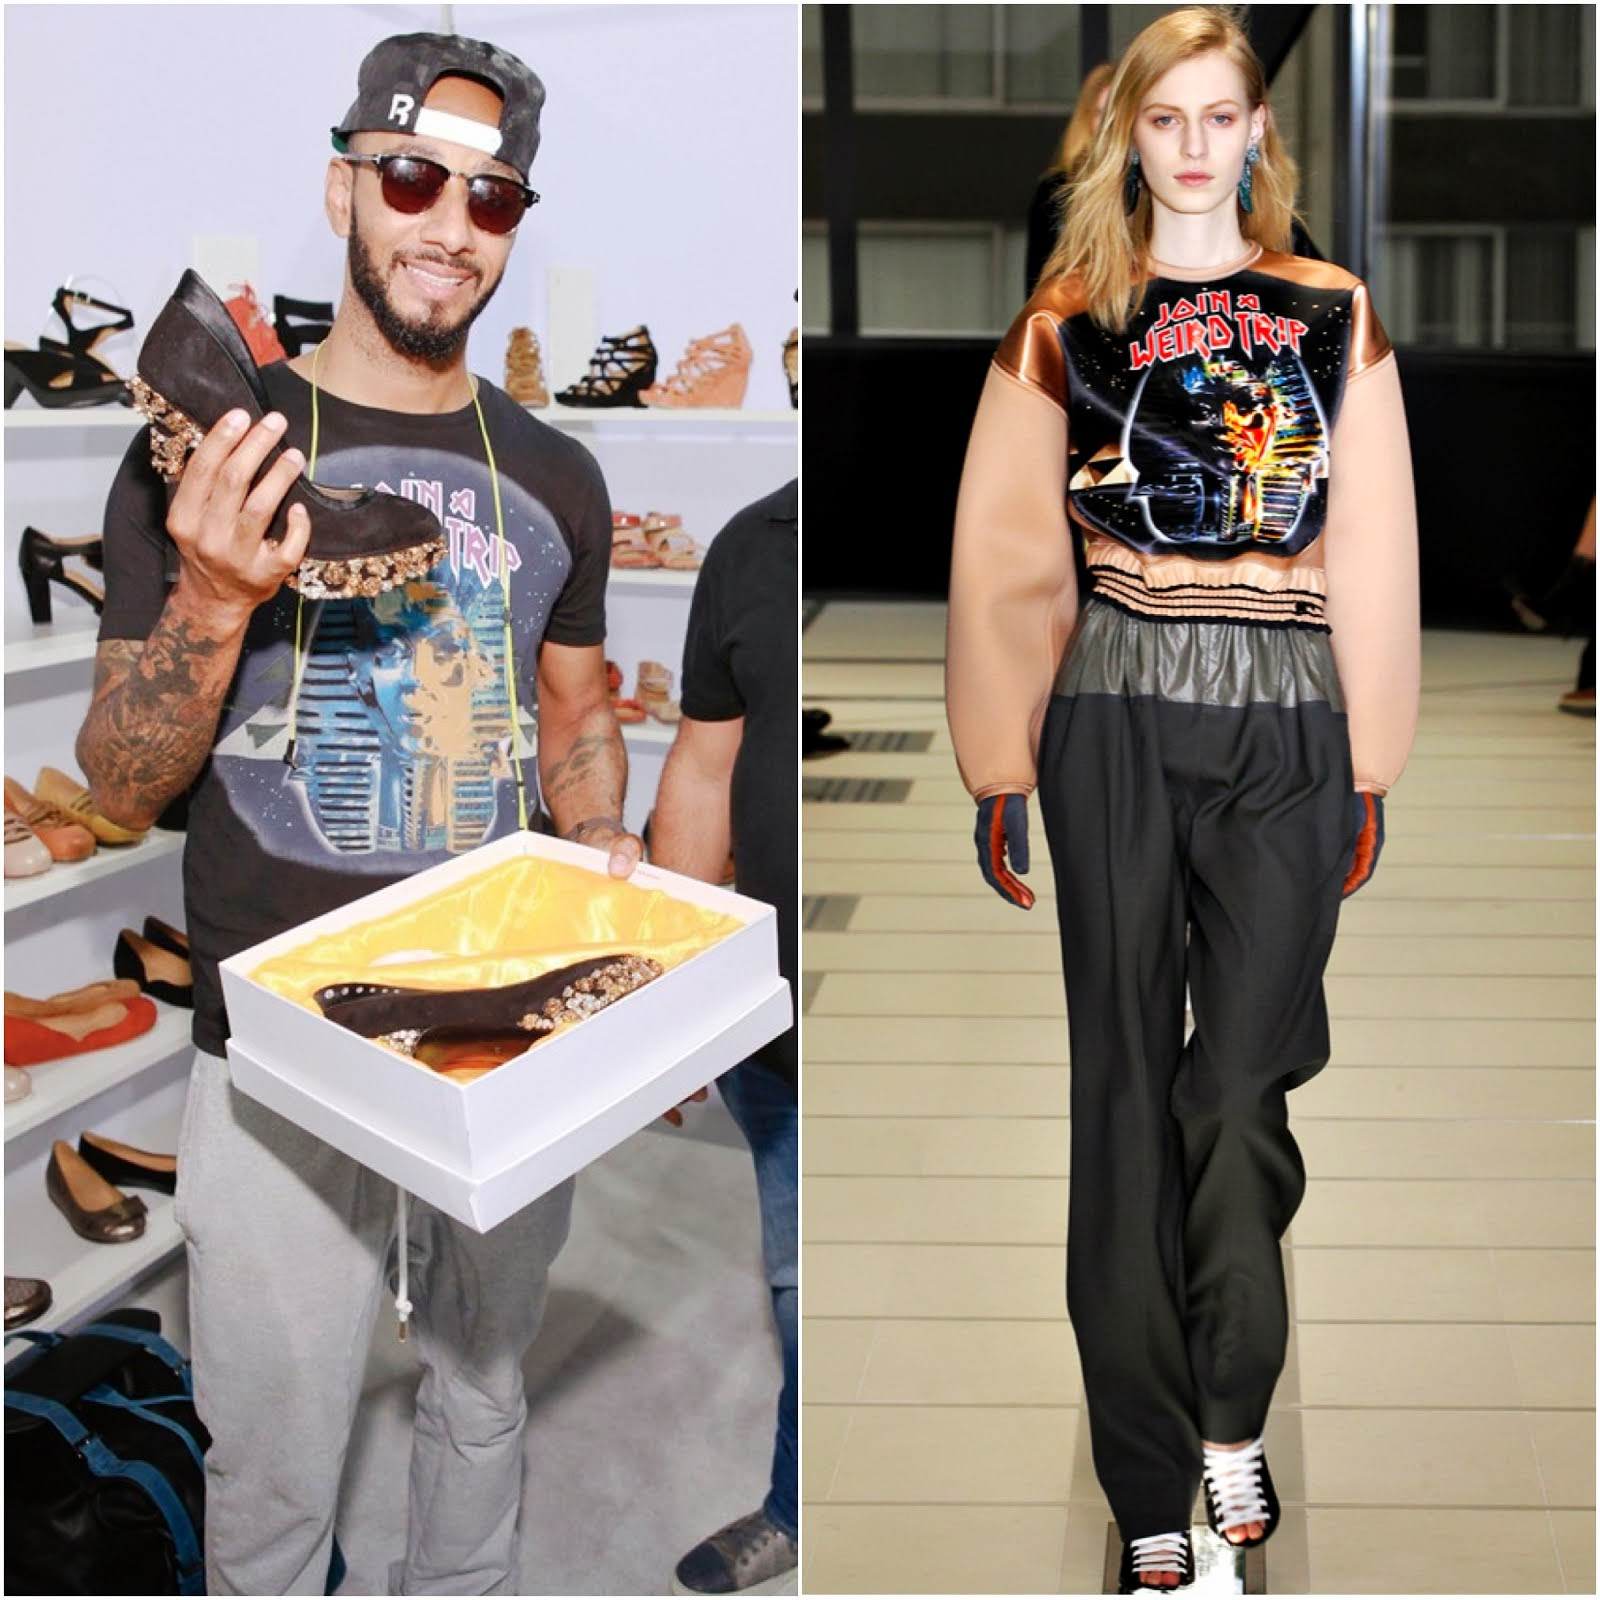 00O00 Menswear Blog: Swizz Beatz in Balenciaga 'Join A Weird Trip' t-shirt - FN Platform, Las vegas September 2013